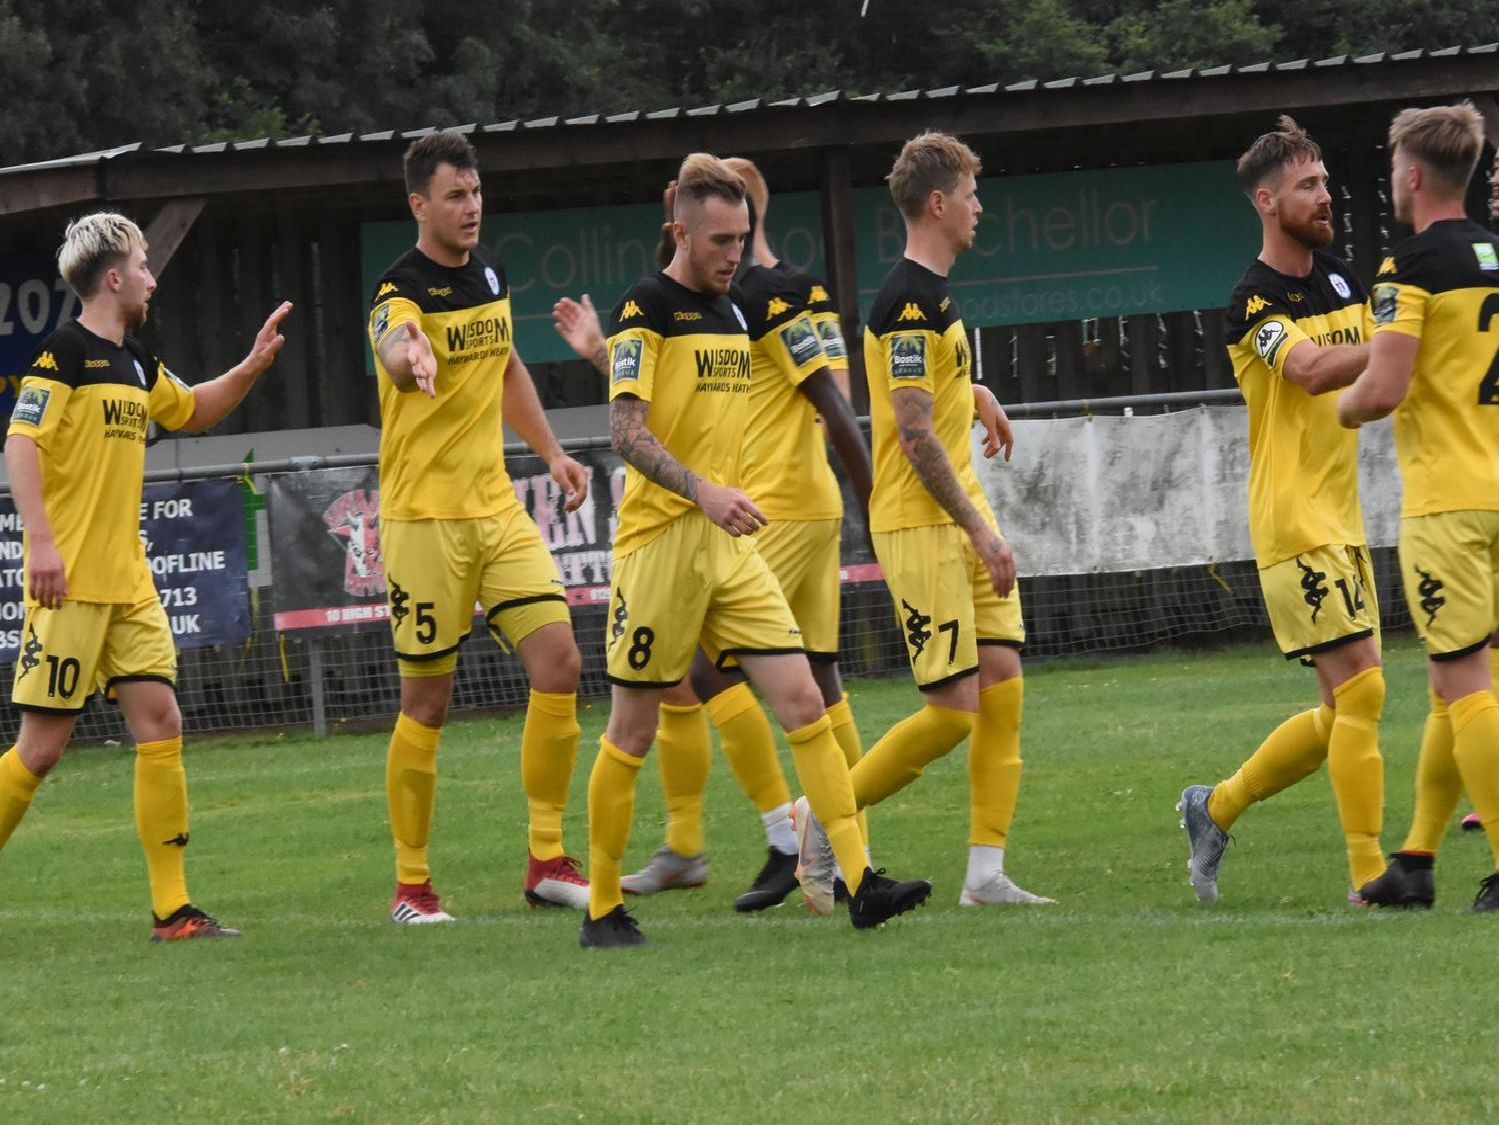 Jack Hartley is congratulated on his goal.